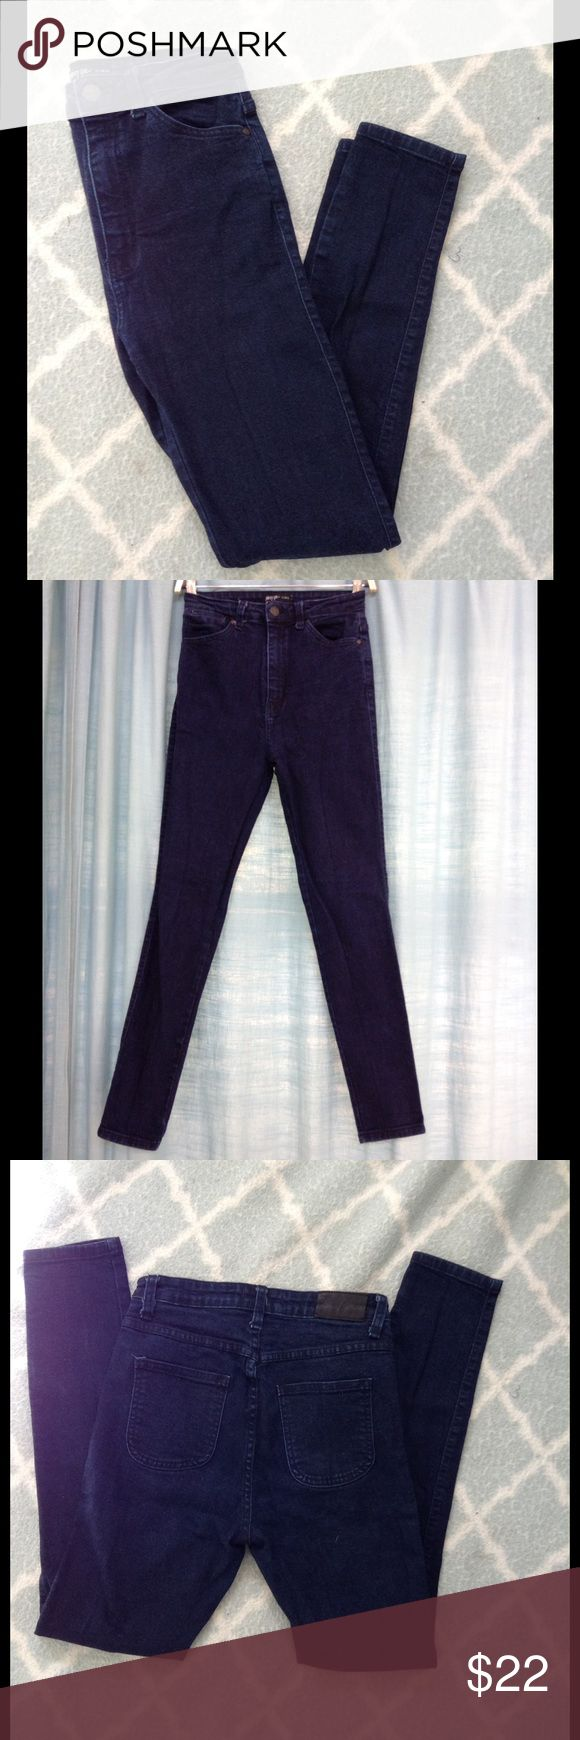 Nast Gal jeans Dark blue Nasty Gal jeans. Skinny high waisted fit. Great condition no distressing or damage. True to size and has a little stretch. Make an offer! Nasty Gal Jeans Skinny